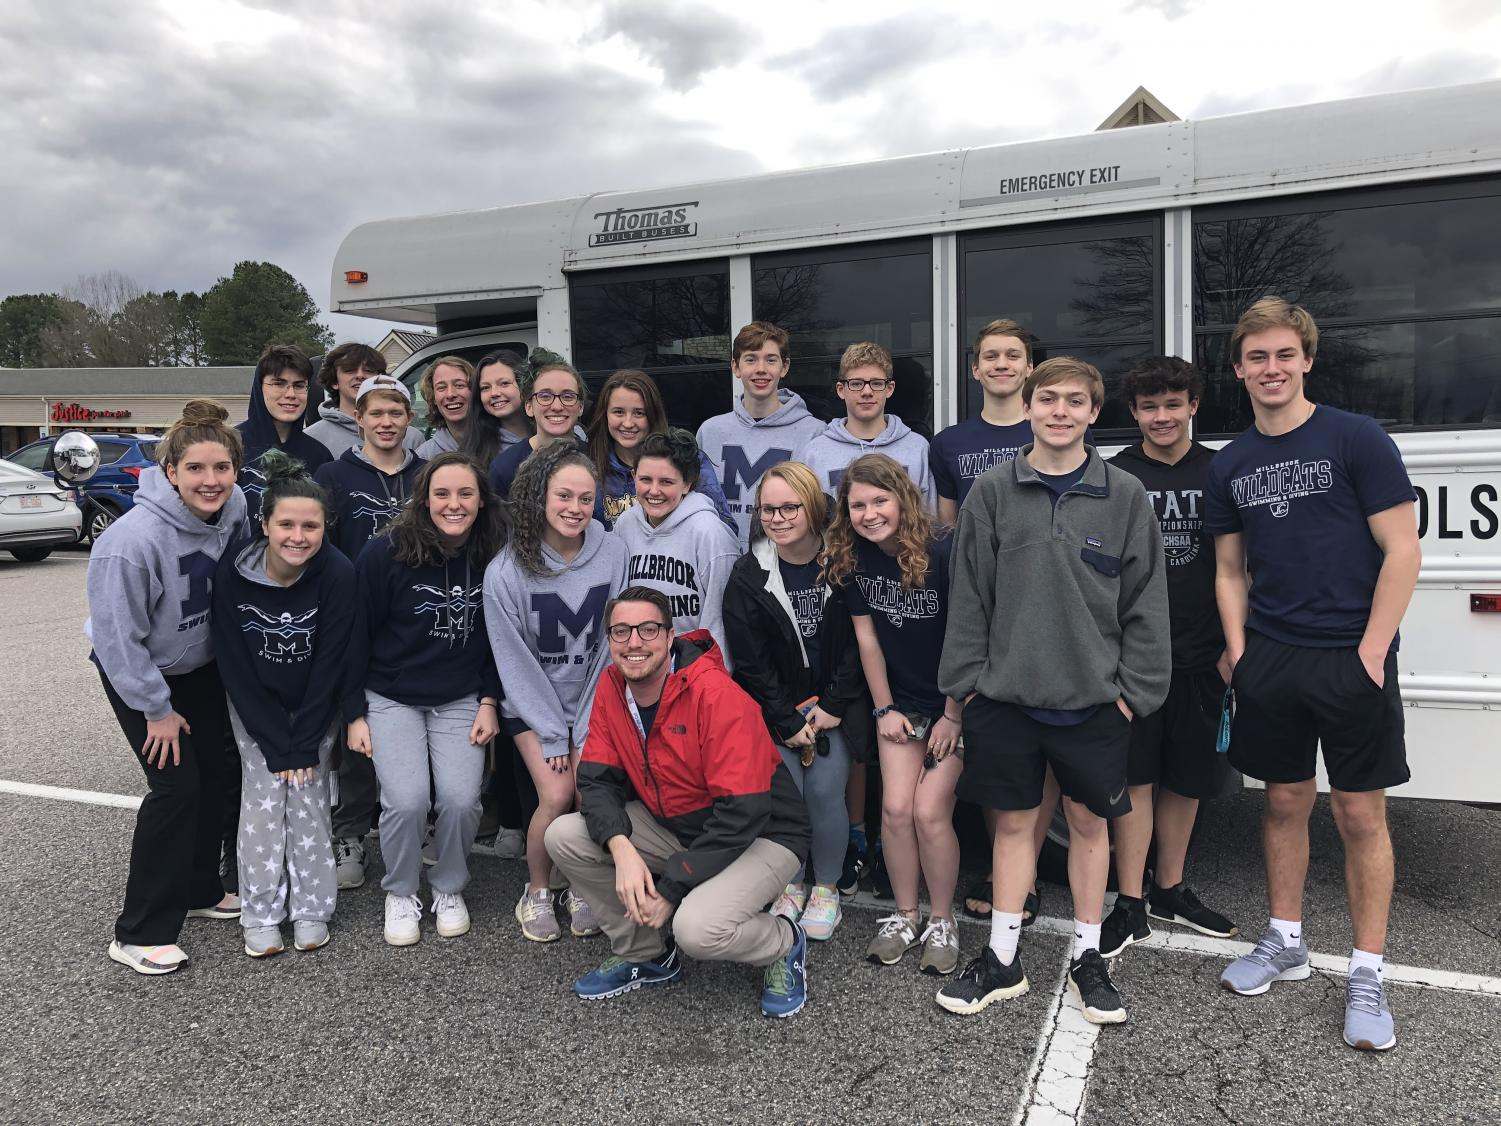 Overjoyed by their successes and a fun bus ride, the Millbrook Aquacats States qualifiers pause to pose for the camera after enjoying a delicious meal together! This picture was taken in between the prelims and finals sessions of their final swim meet of the year.